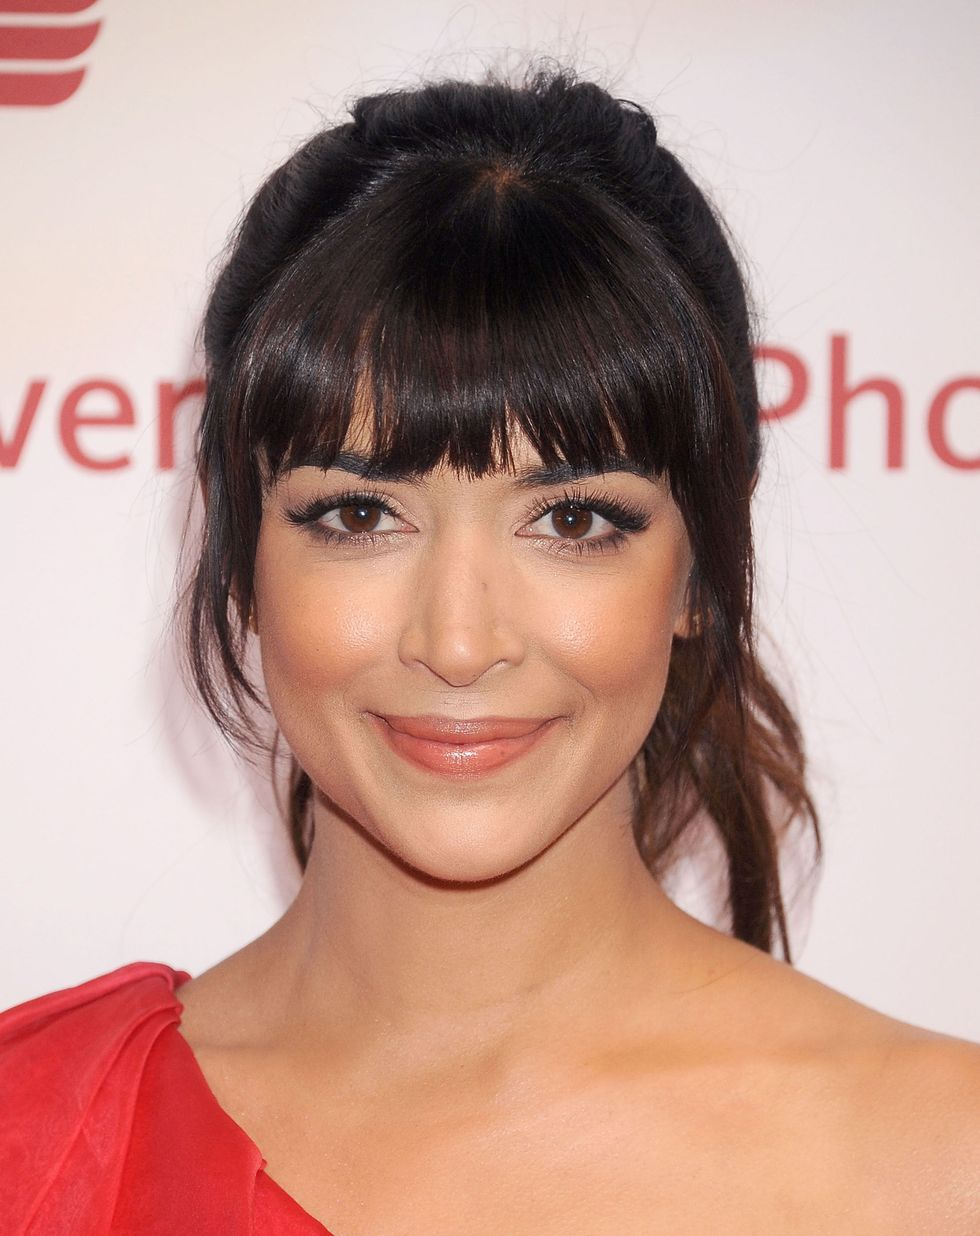 13 Ways To Get The Best Bangs For Your Face In 2020 Heart Shaped Face Hairstyles Oval Face Bangs Bangs For Round Face